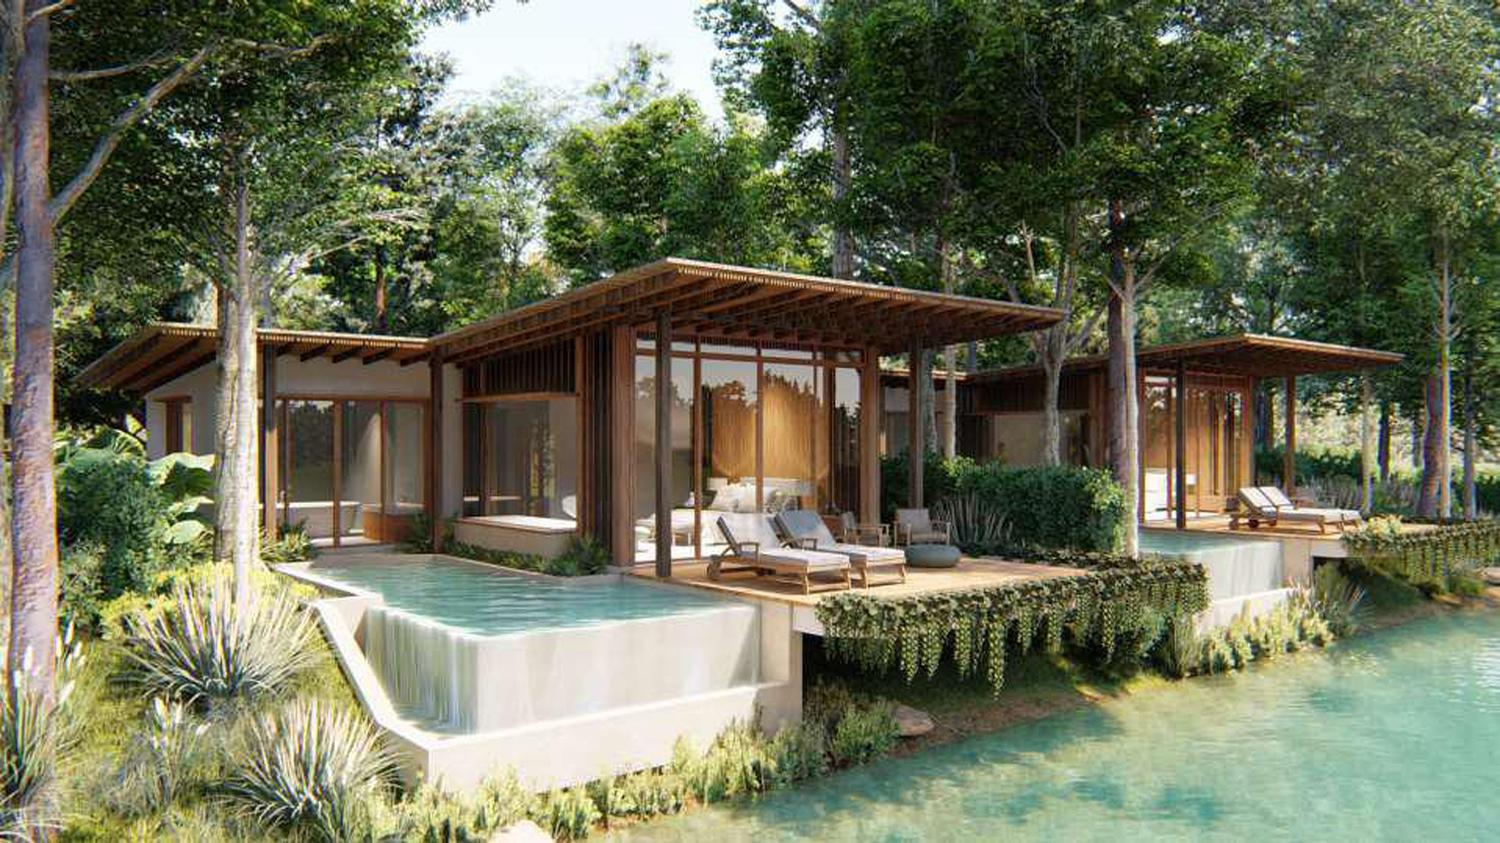 The resort's accommodation offering will consist of 298 two- or three-bedroom solar-powered villas designed by Habita Architects together with Arsom Silp Institute of the Arts